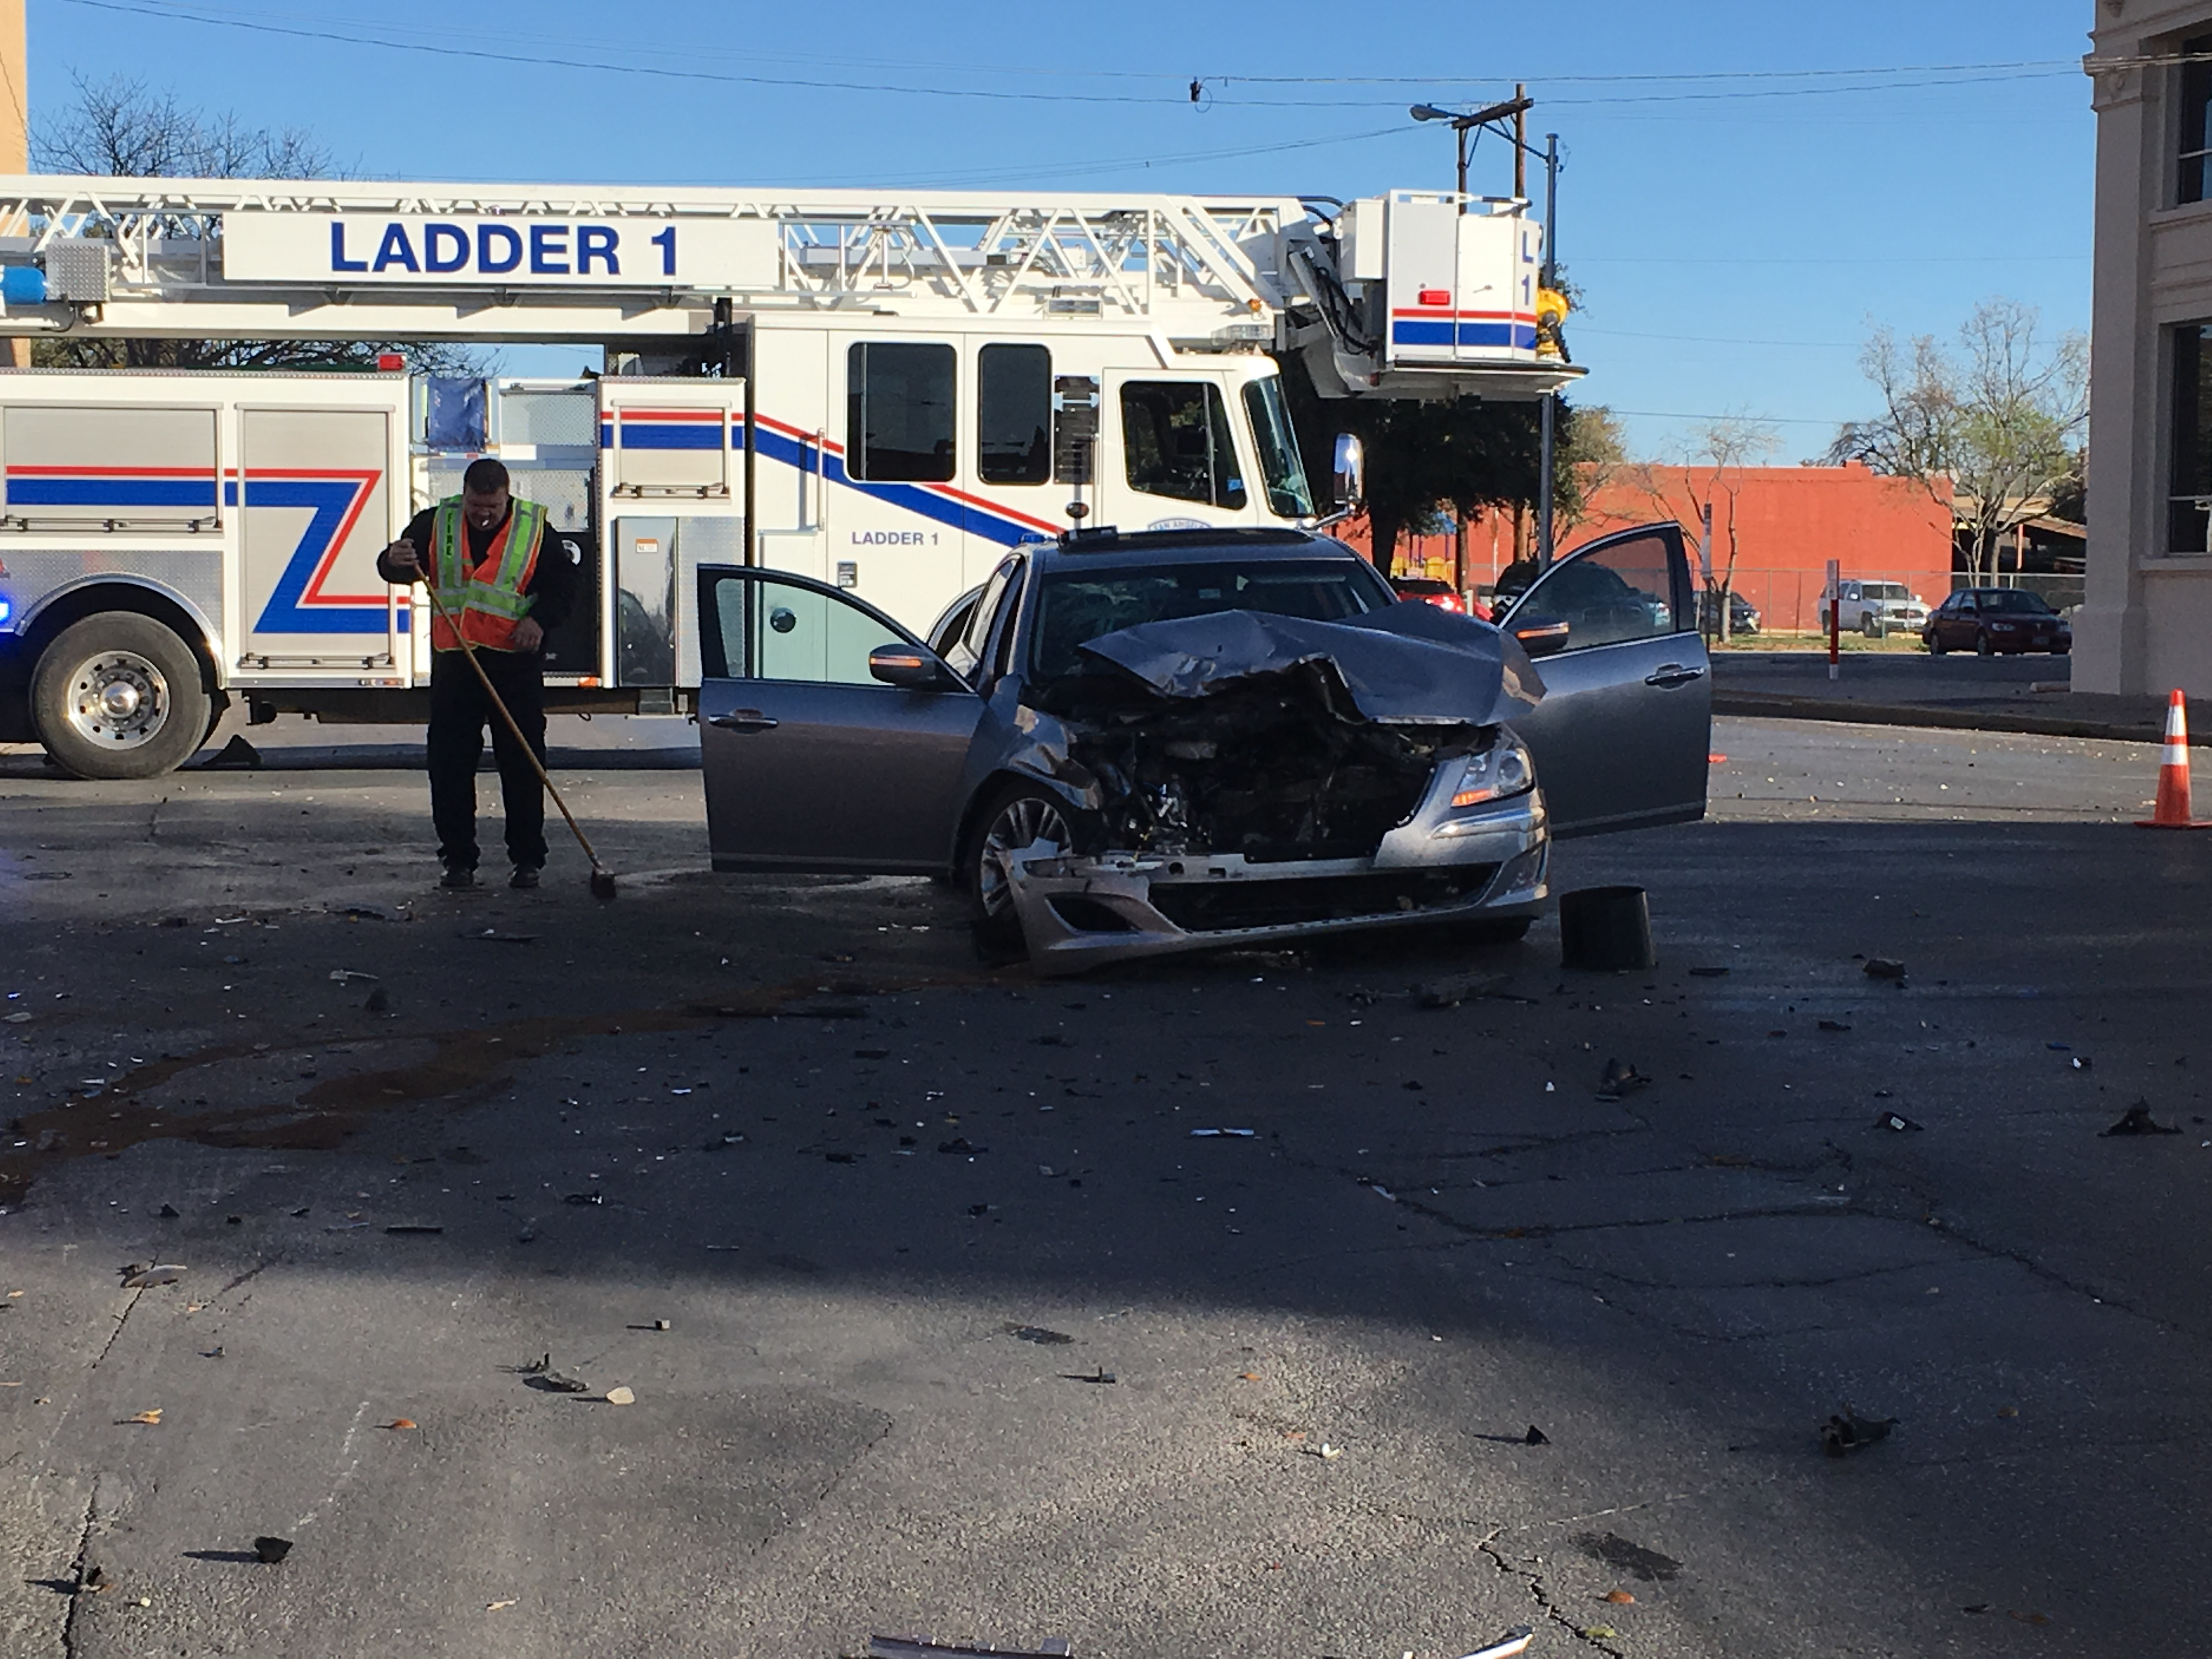 Two vehicles collide at the crossing of W. Beauregard and Chadbourne damaging a nearby traffic light. (Photo/LIVE!: Maura Ballard)